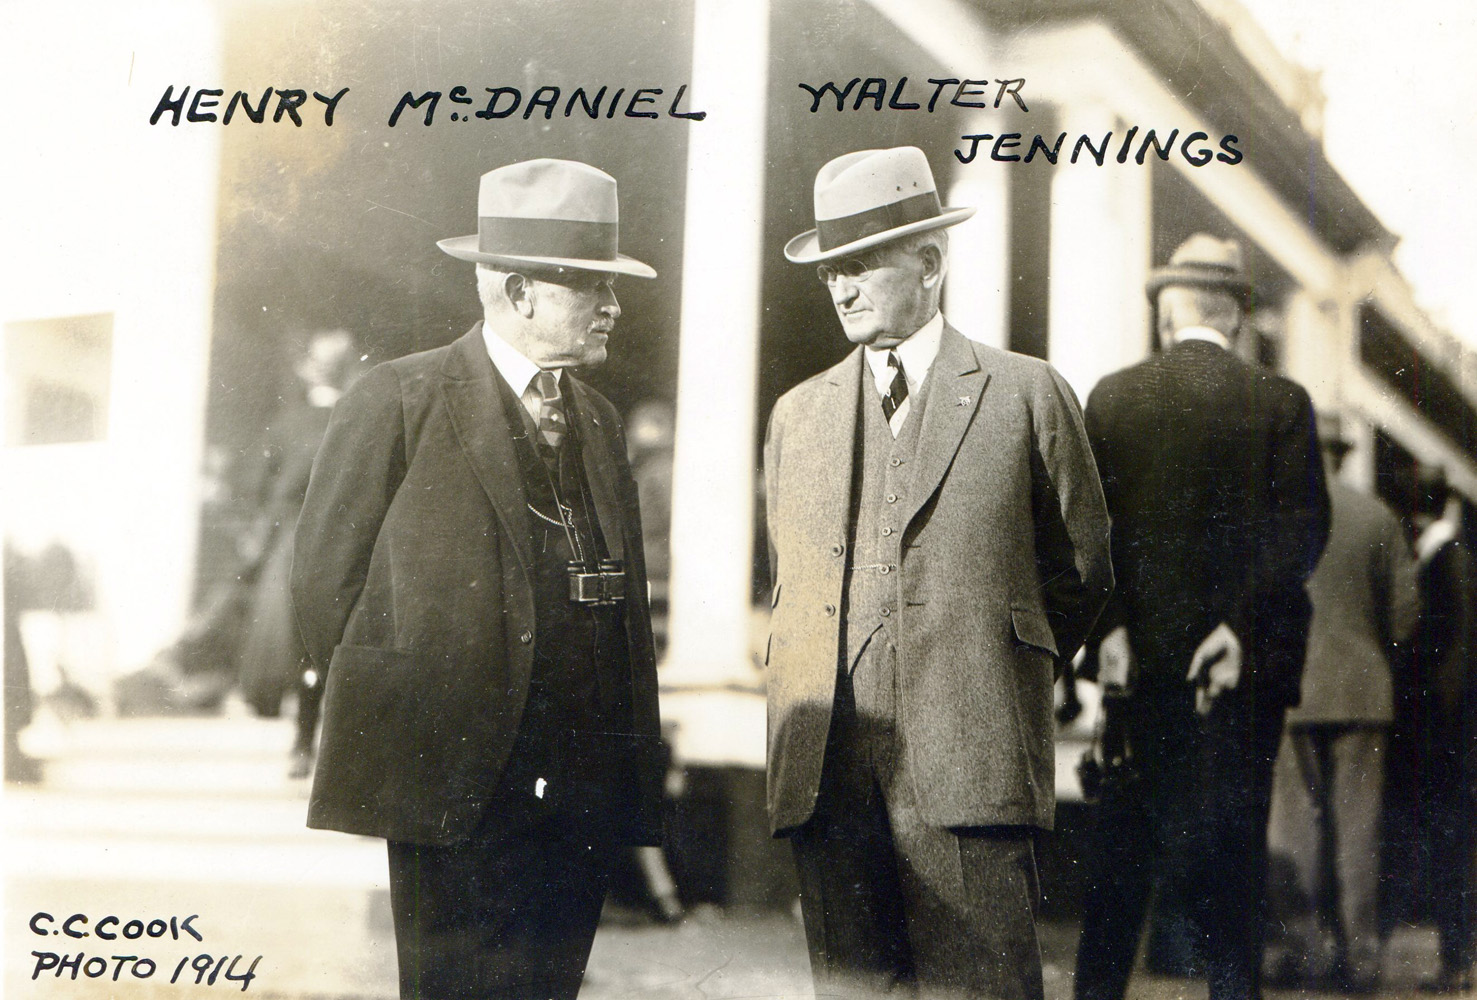 Henry McDaniel and Walter Jennings, 1914 (C. C. Cook/Museum Collection)